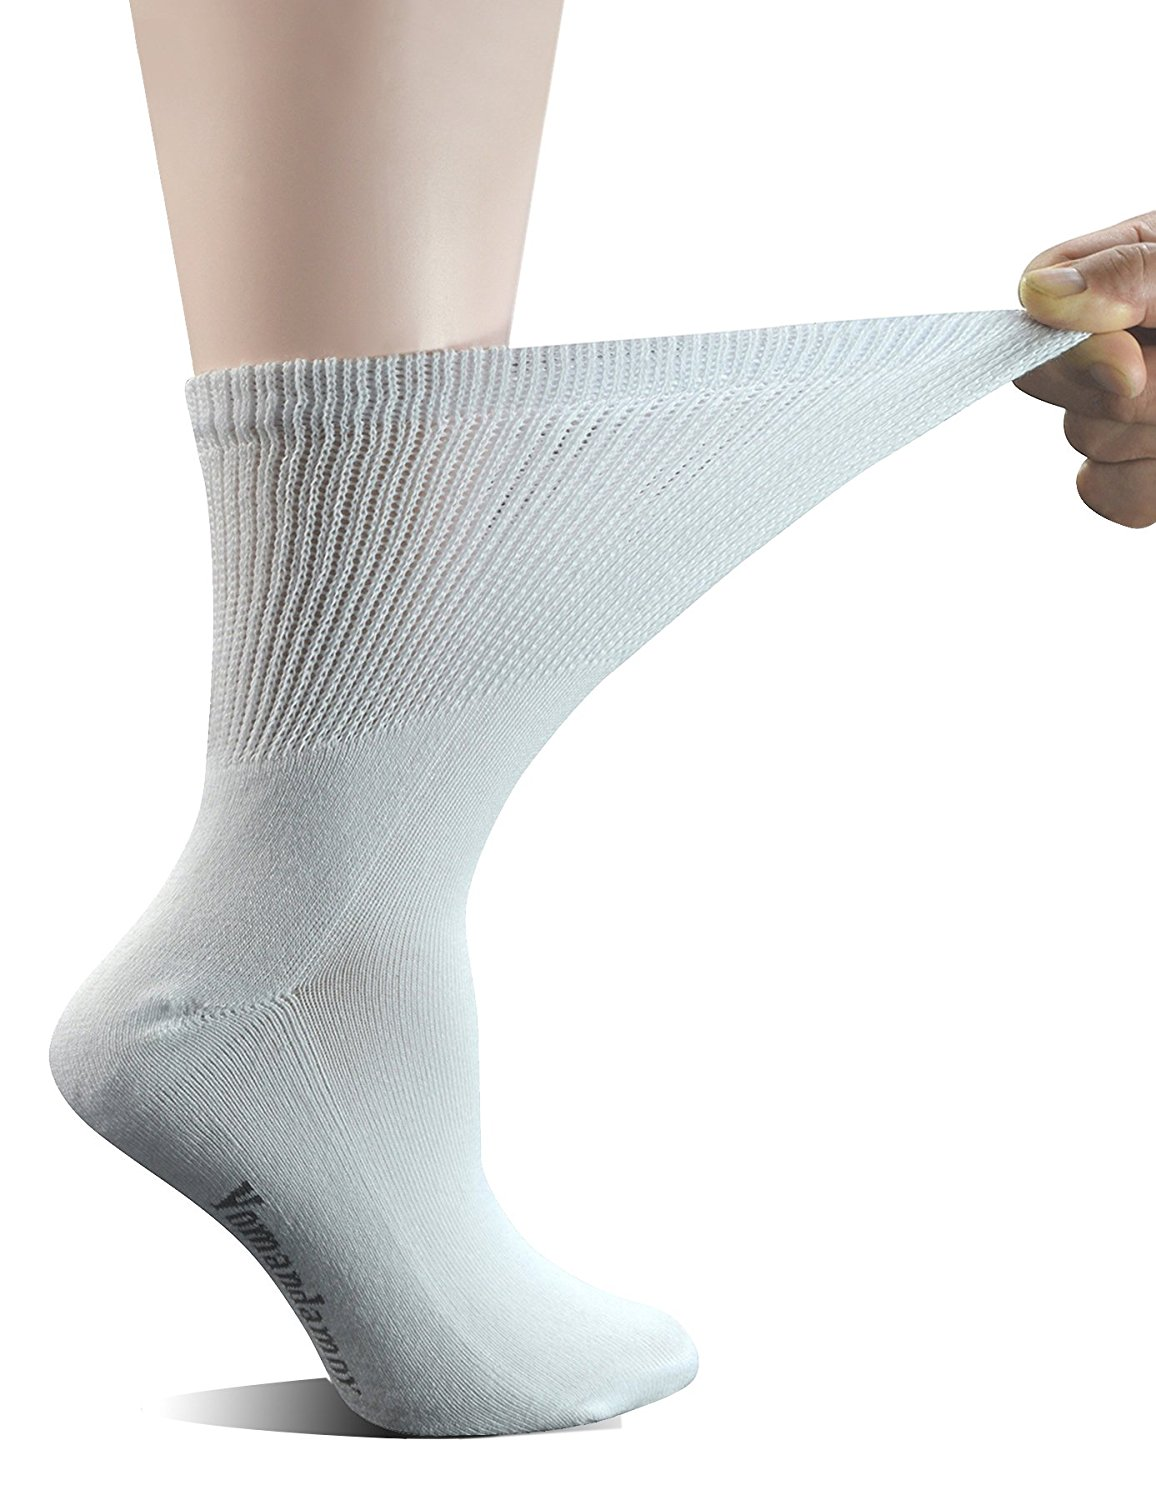 94d0749a8ff61 Get Quotations · Yomandamor Women's 5 Pairs Non-Binding Cotton Crew  Diabetic/Dress Socks with Seamless Toe